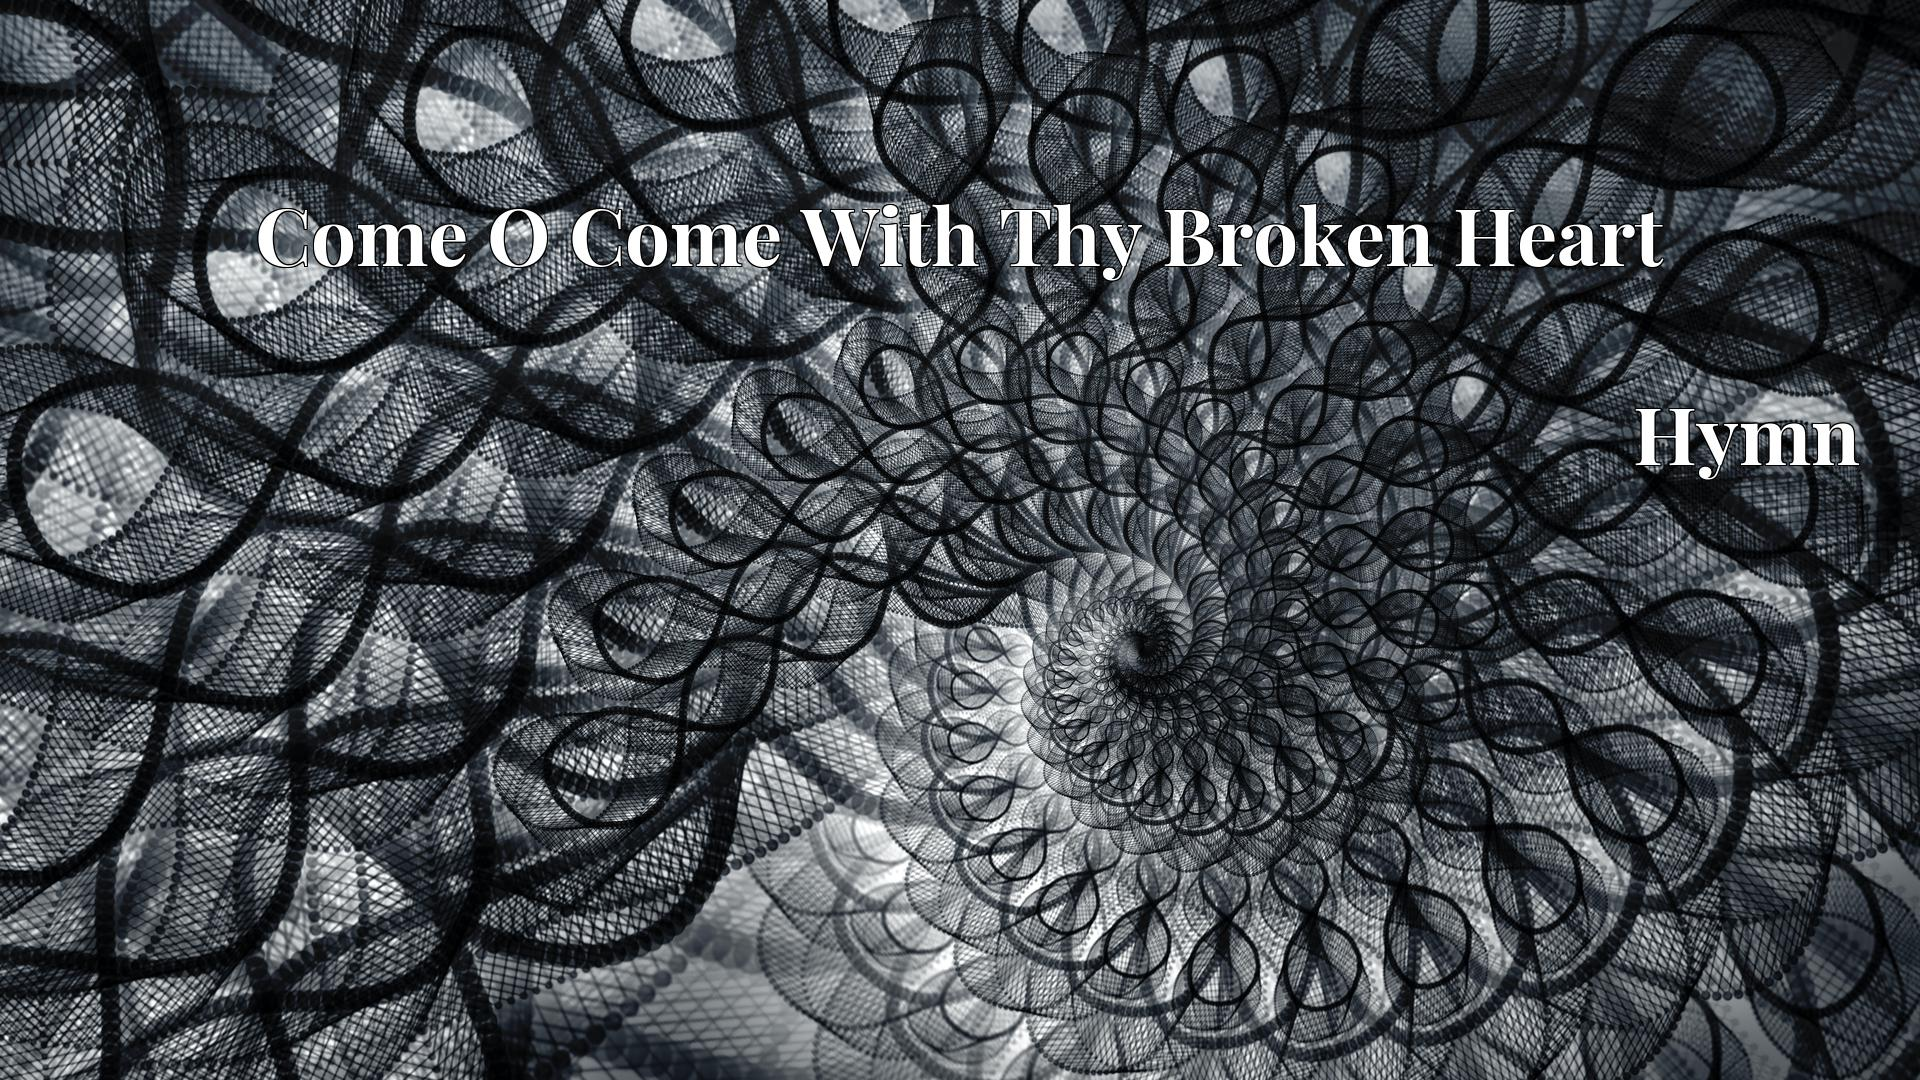 Come O Come With Thy Broken Heart Hymn Lyric